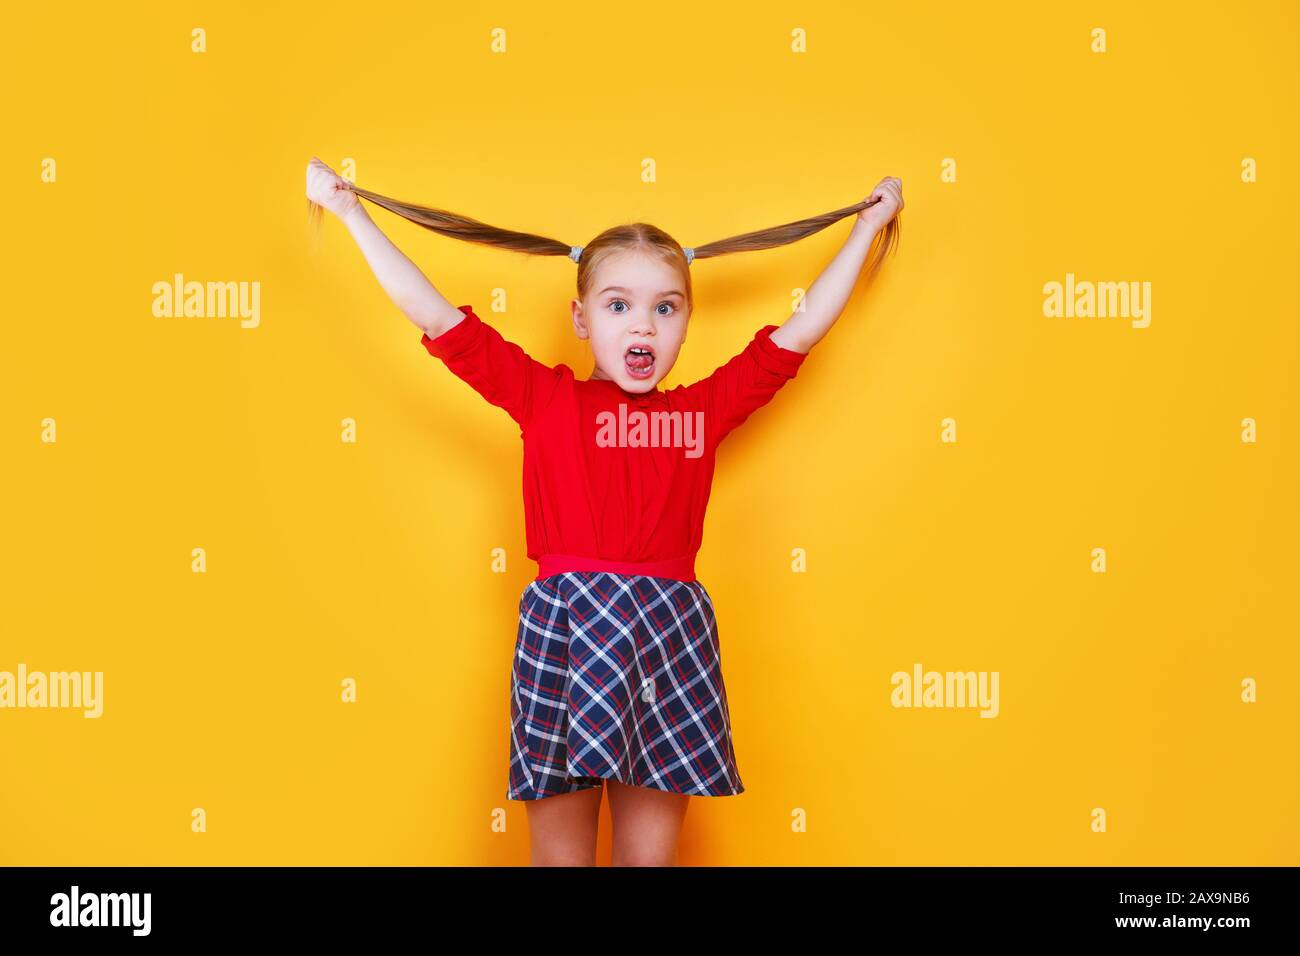 Little girl sticking tongue out happy with funny expression. Emotion concept. Stock Photo